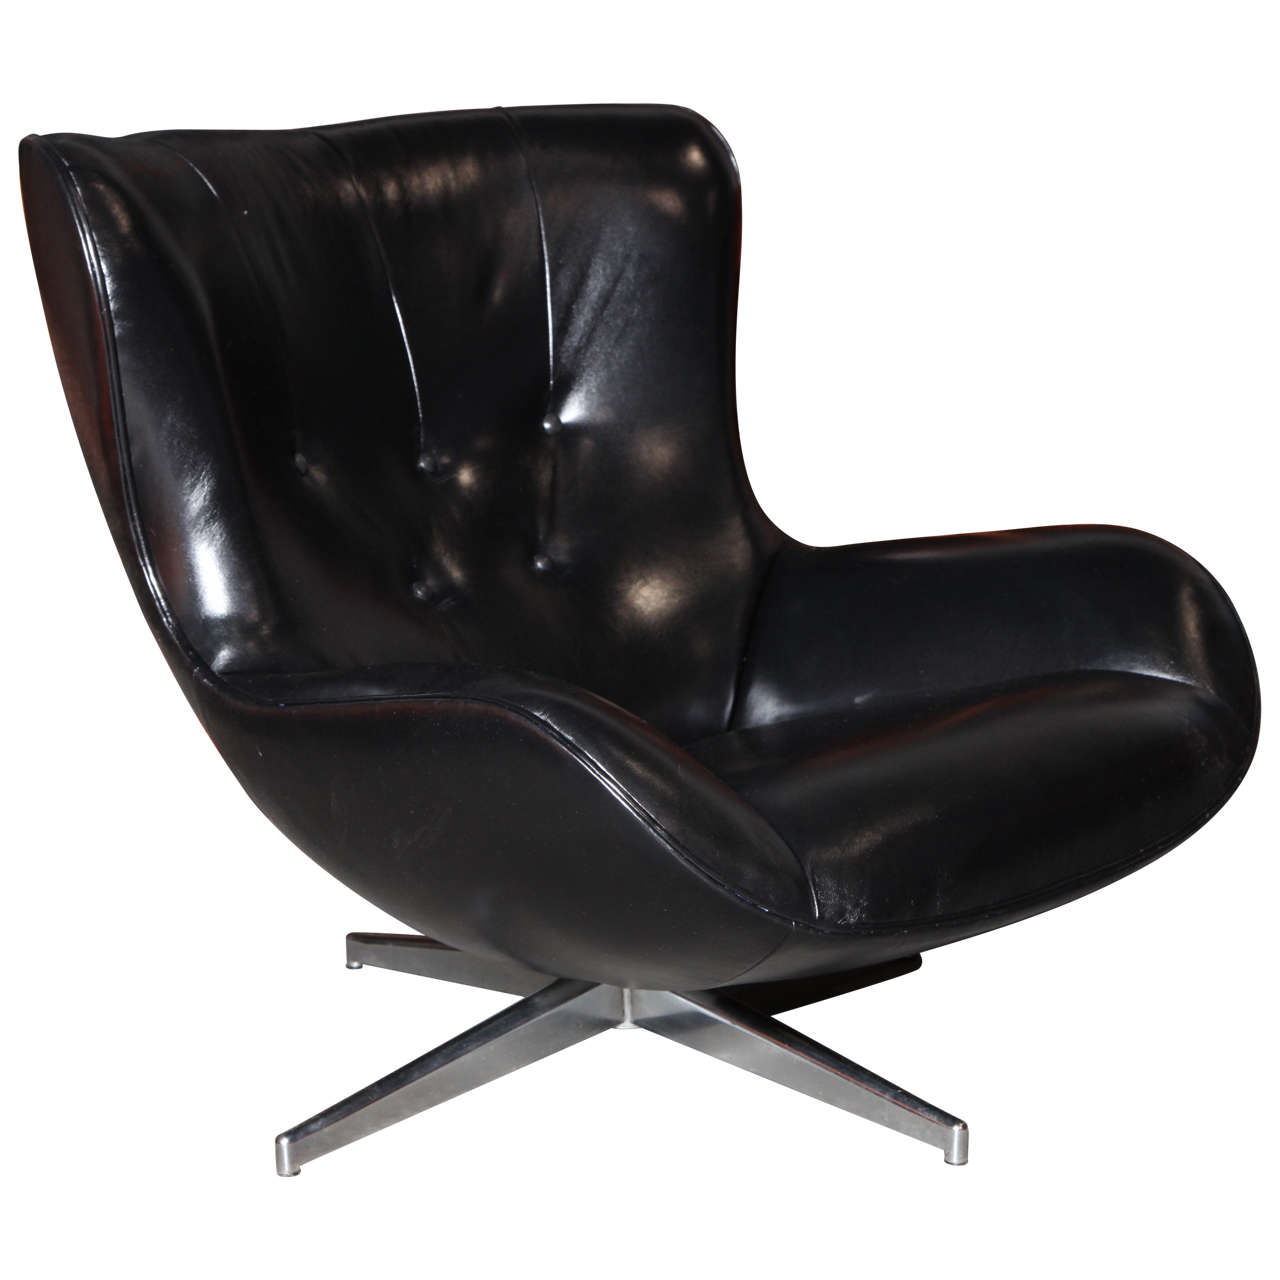 Ml214 Leather Club Chair By Illum Wikkelso At 1stdibs